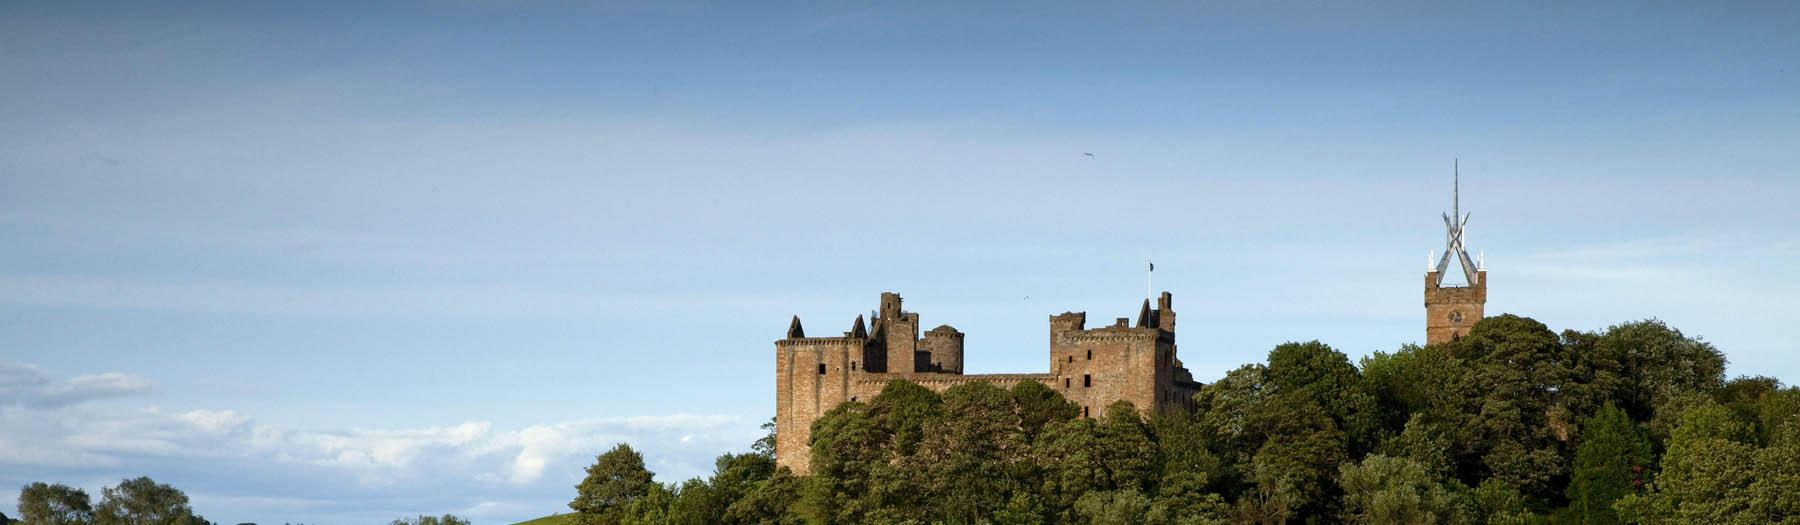 Image: Linlithgow Palace. Credit: Image used with permission from VisitScotland and Scottish Viewpoint.